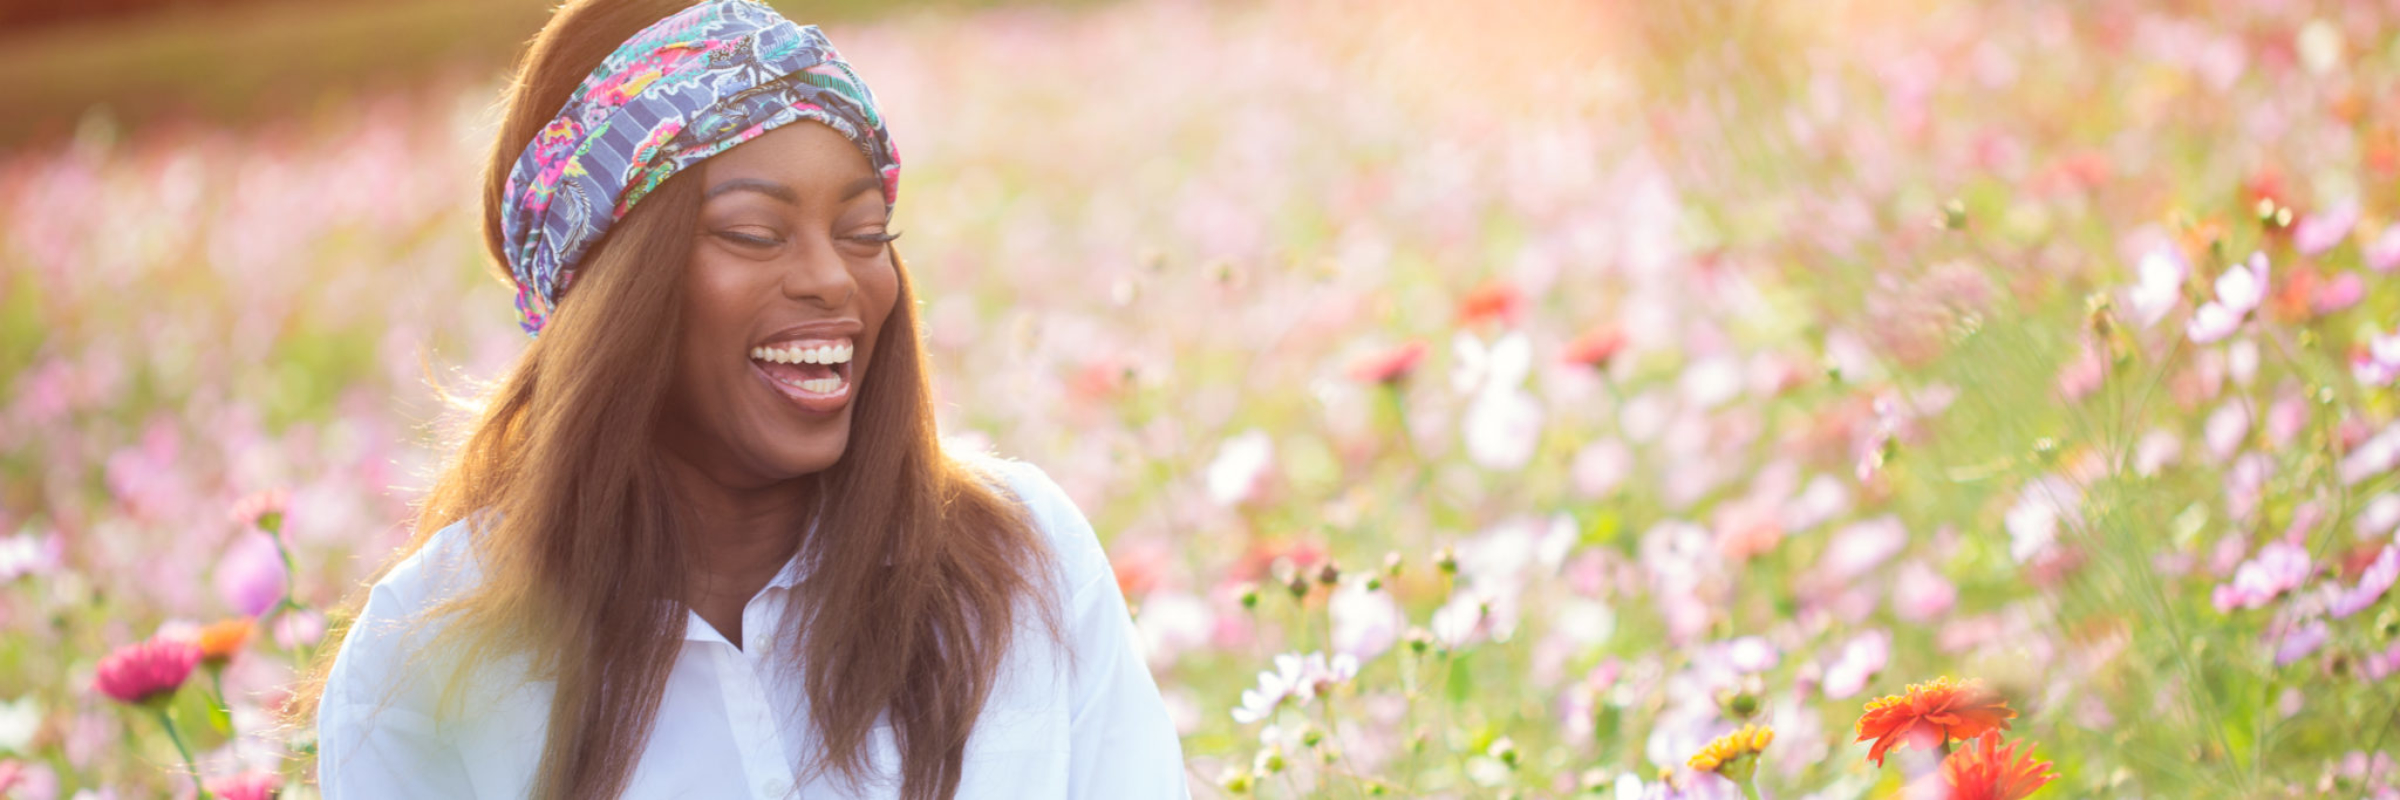 woman laughing in a field for Becca 1916 turban personal branding